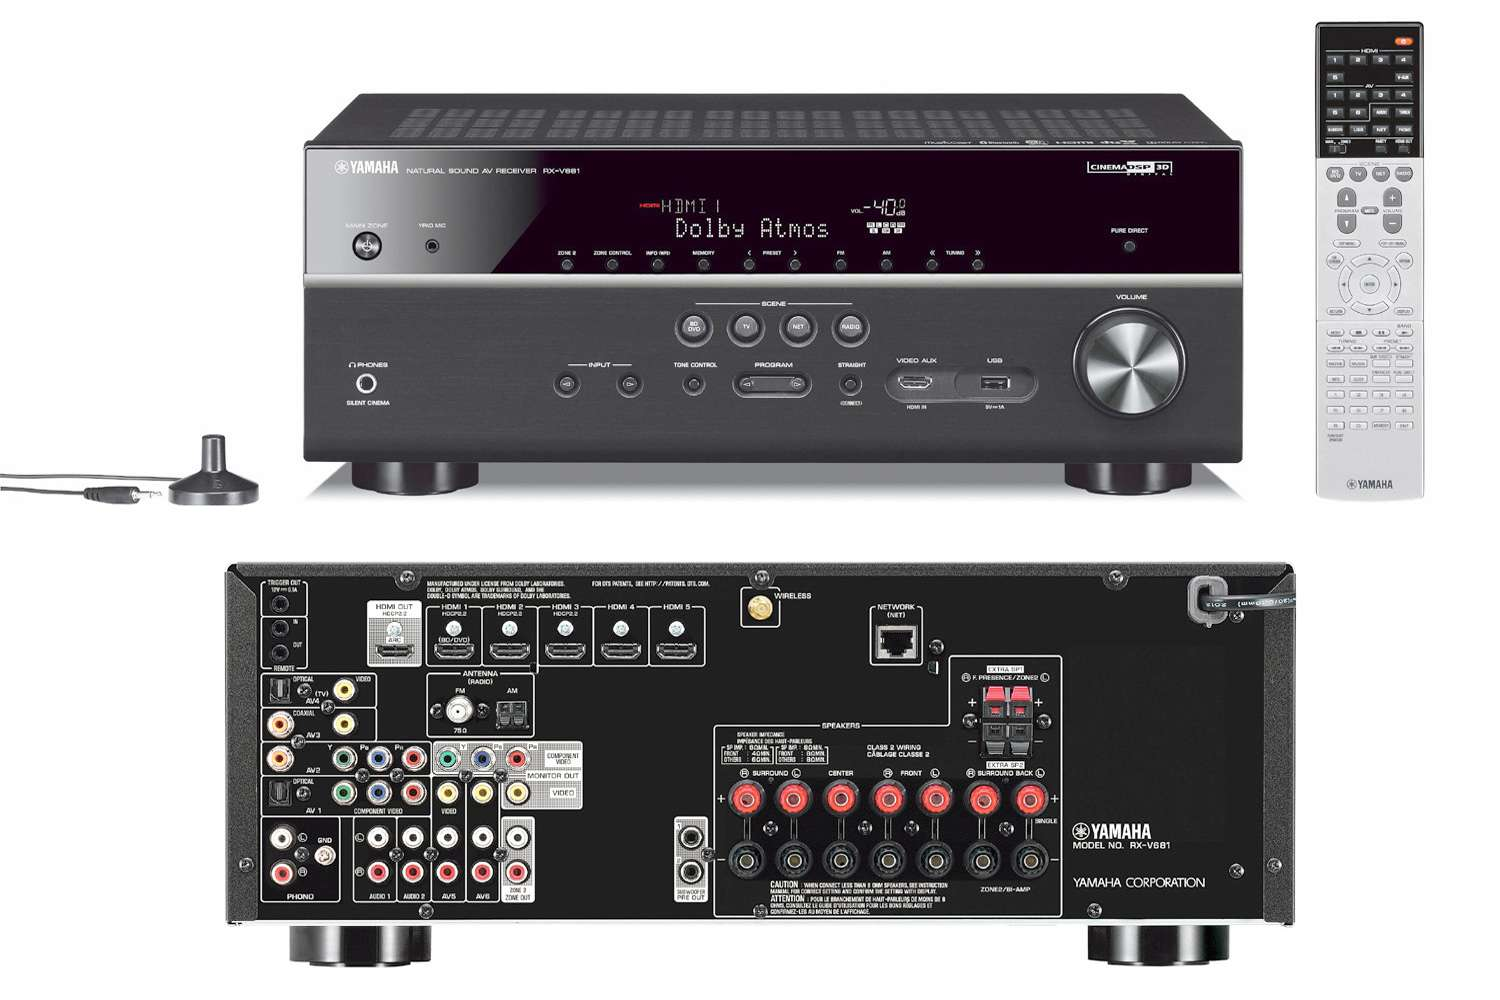 Yamaha RX-V681 Home Theater Receiver with Remote and Speaker Setup Mic